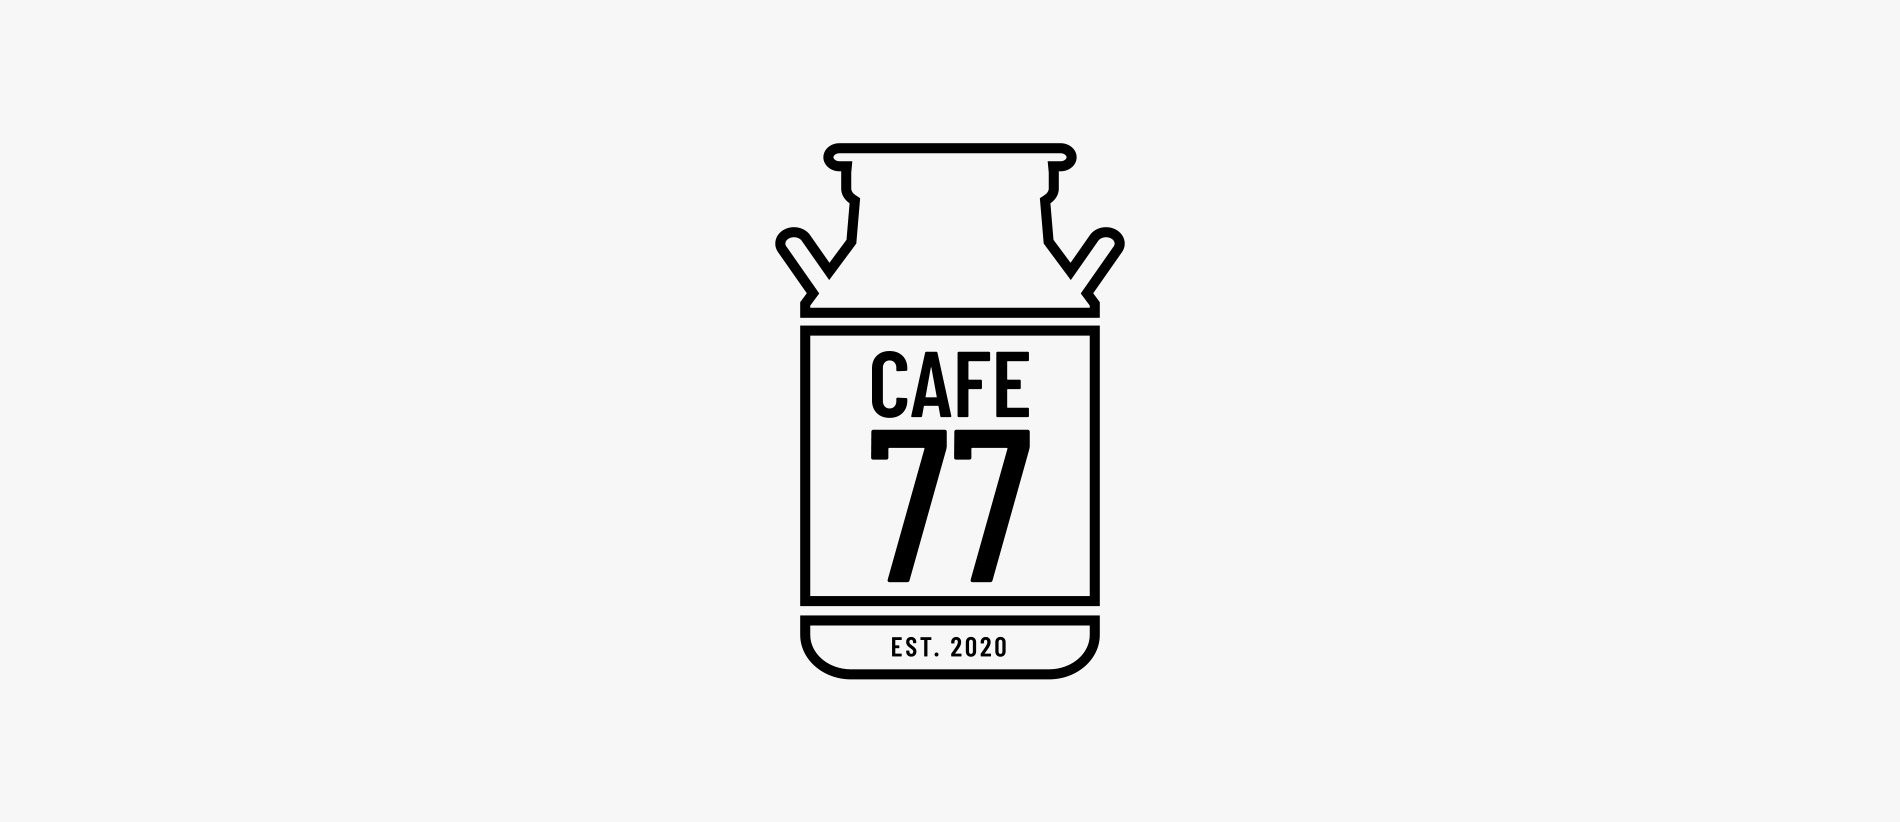 AM-Project-Logos-Cafe77-1